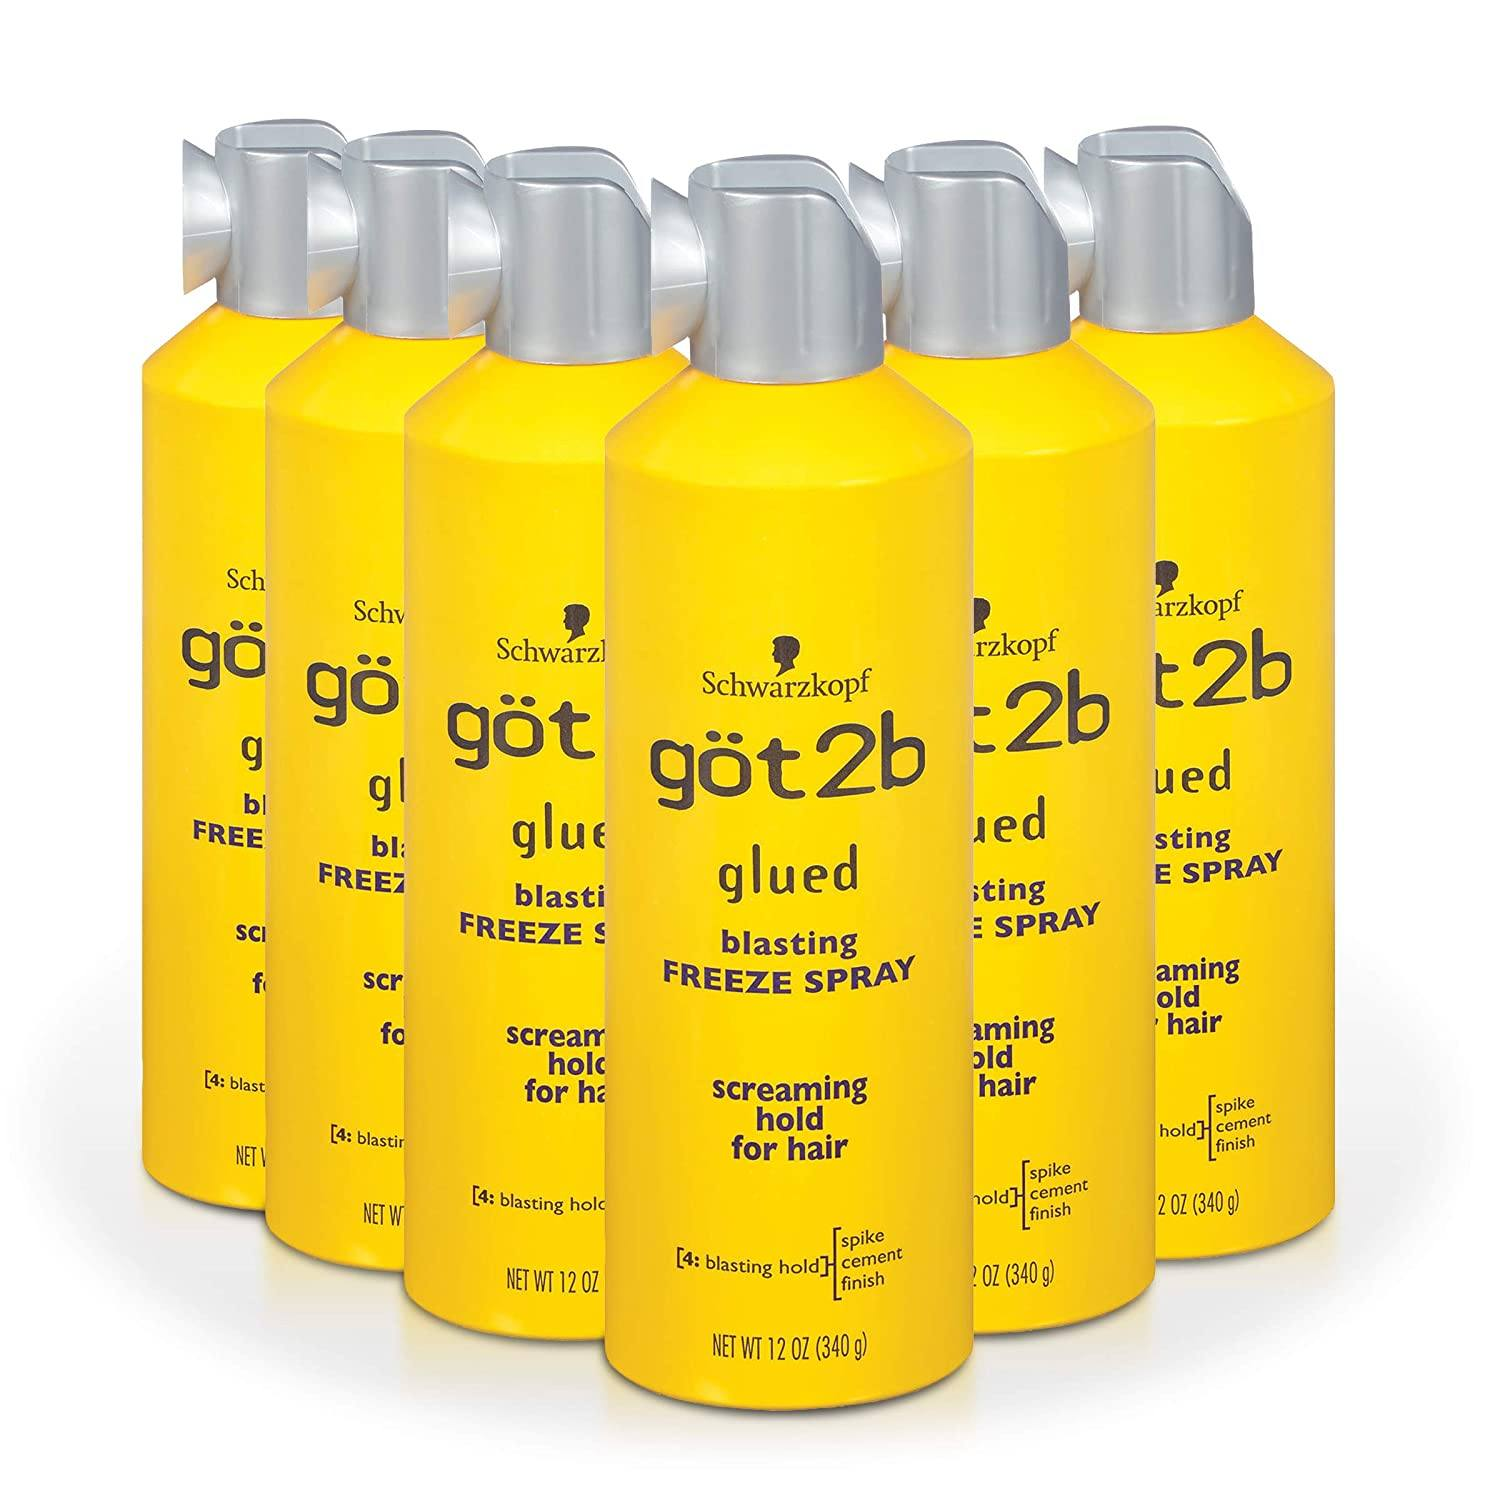 got2b glued Blasting Freeze Spray 12oz (1PC)